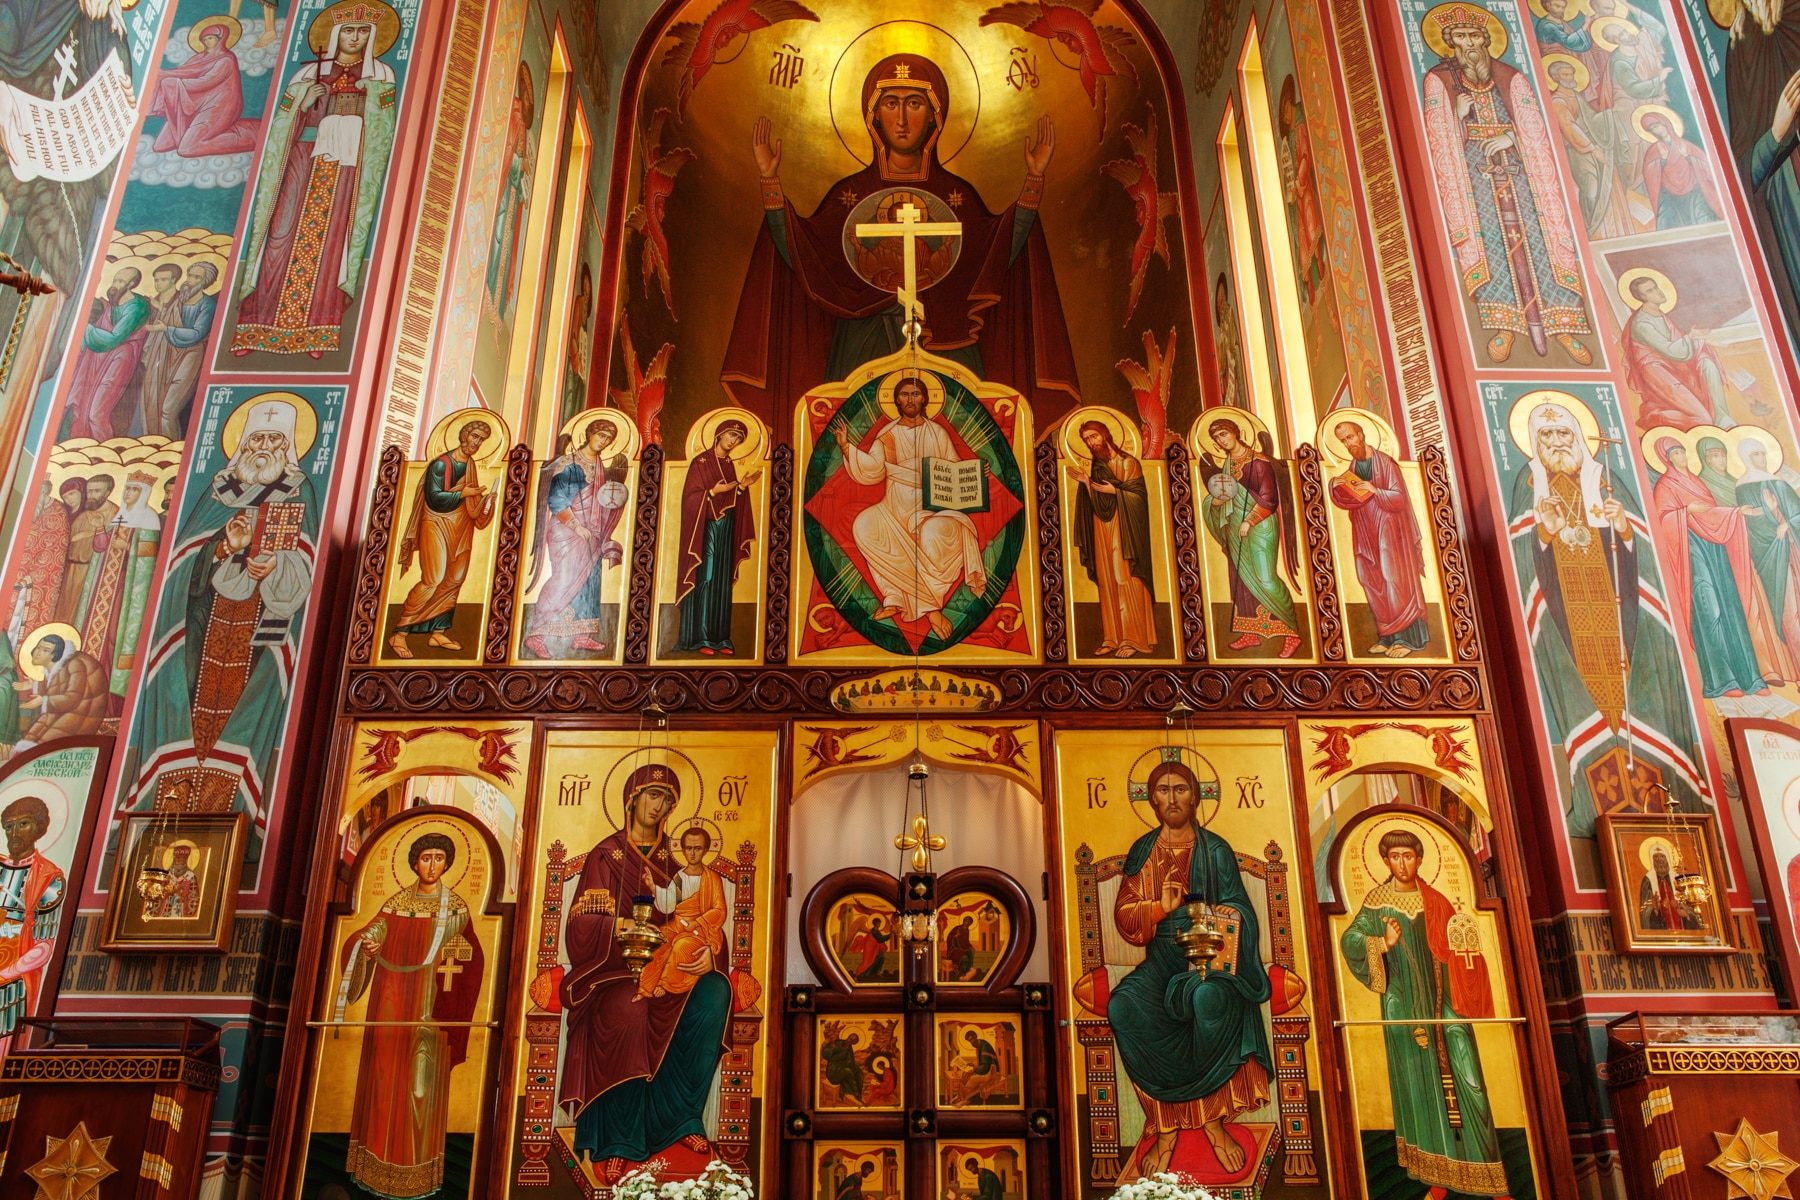 Religious display with many paintings of saints (Irakli Chikhladze)